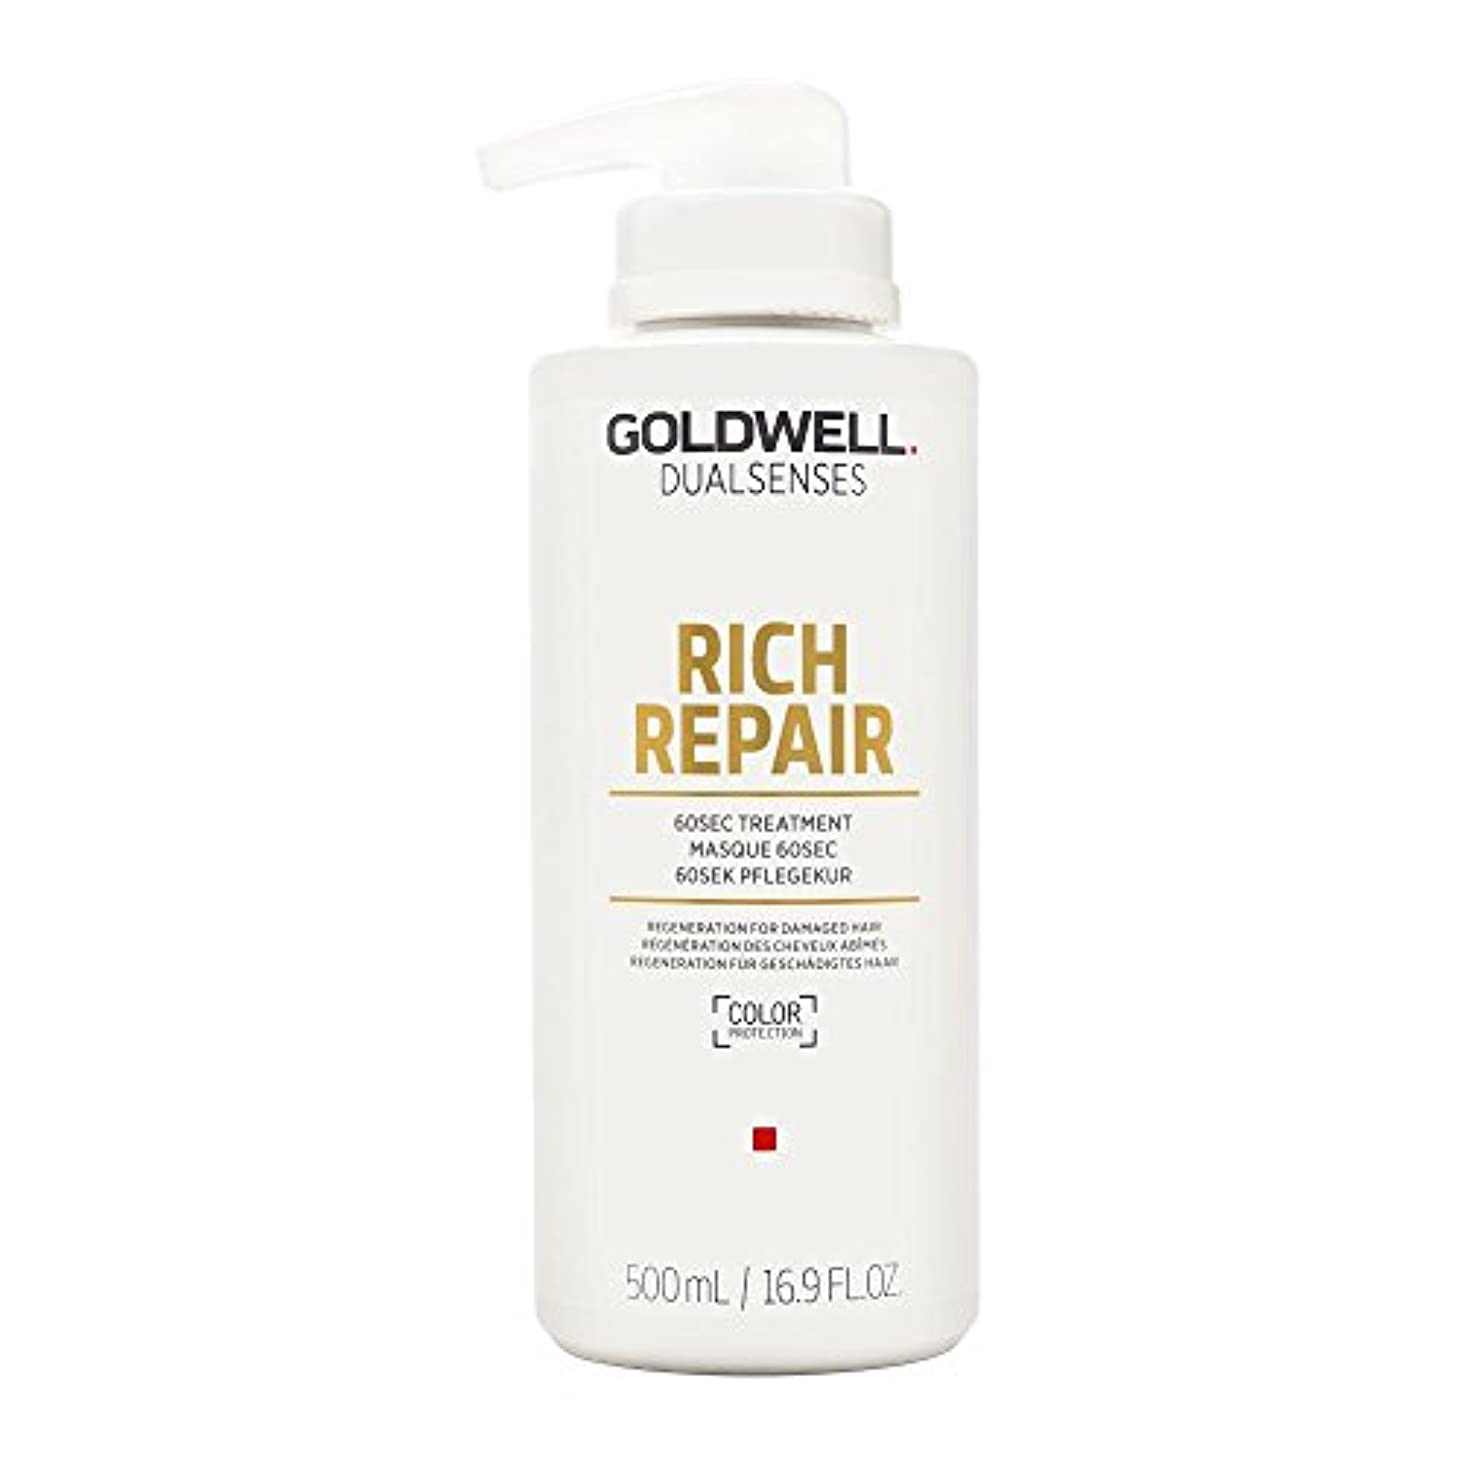 カプラー刈り取る芸術ゴールドウェル Dual Senses Rich Repair 60Sec Treatment (Regeneration For Damaged Hair) 500ml/16.9oz並行輸入品